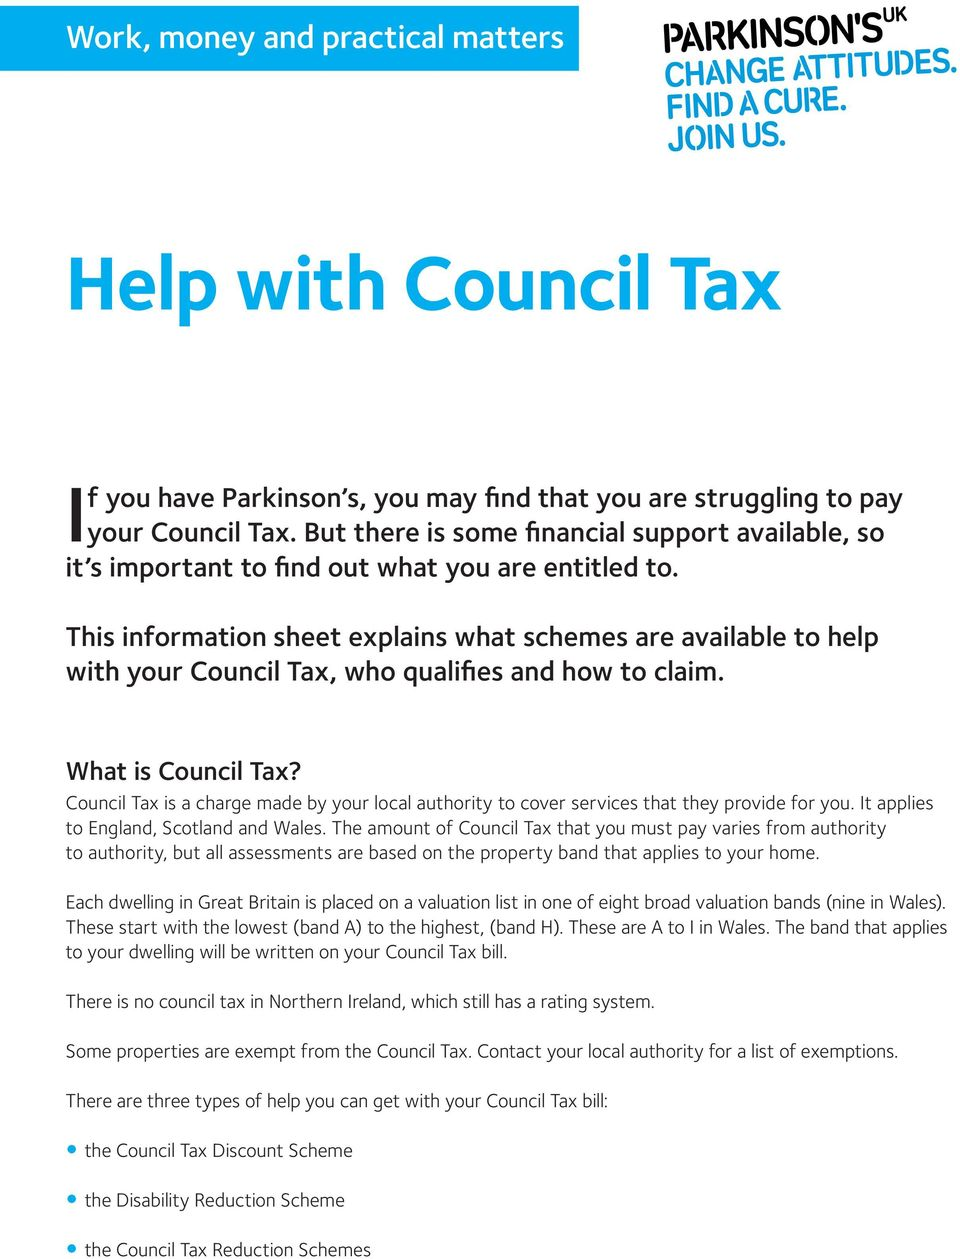 This information sheet explains what schemes are available to help with your Council Tax, who qualifies and how to claim. What is Council Tax?